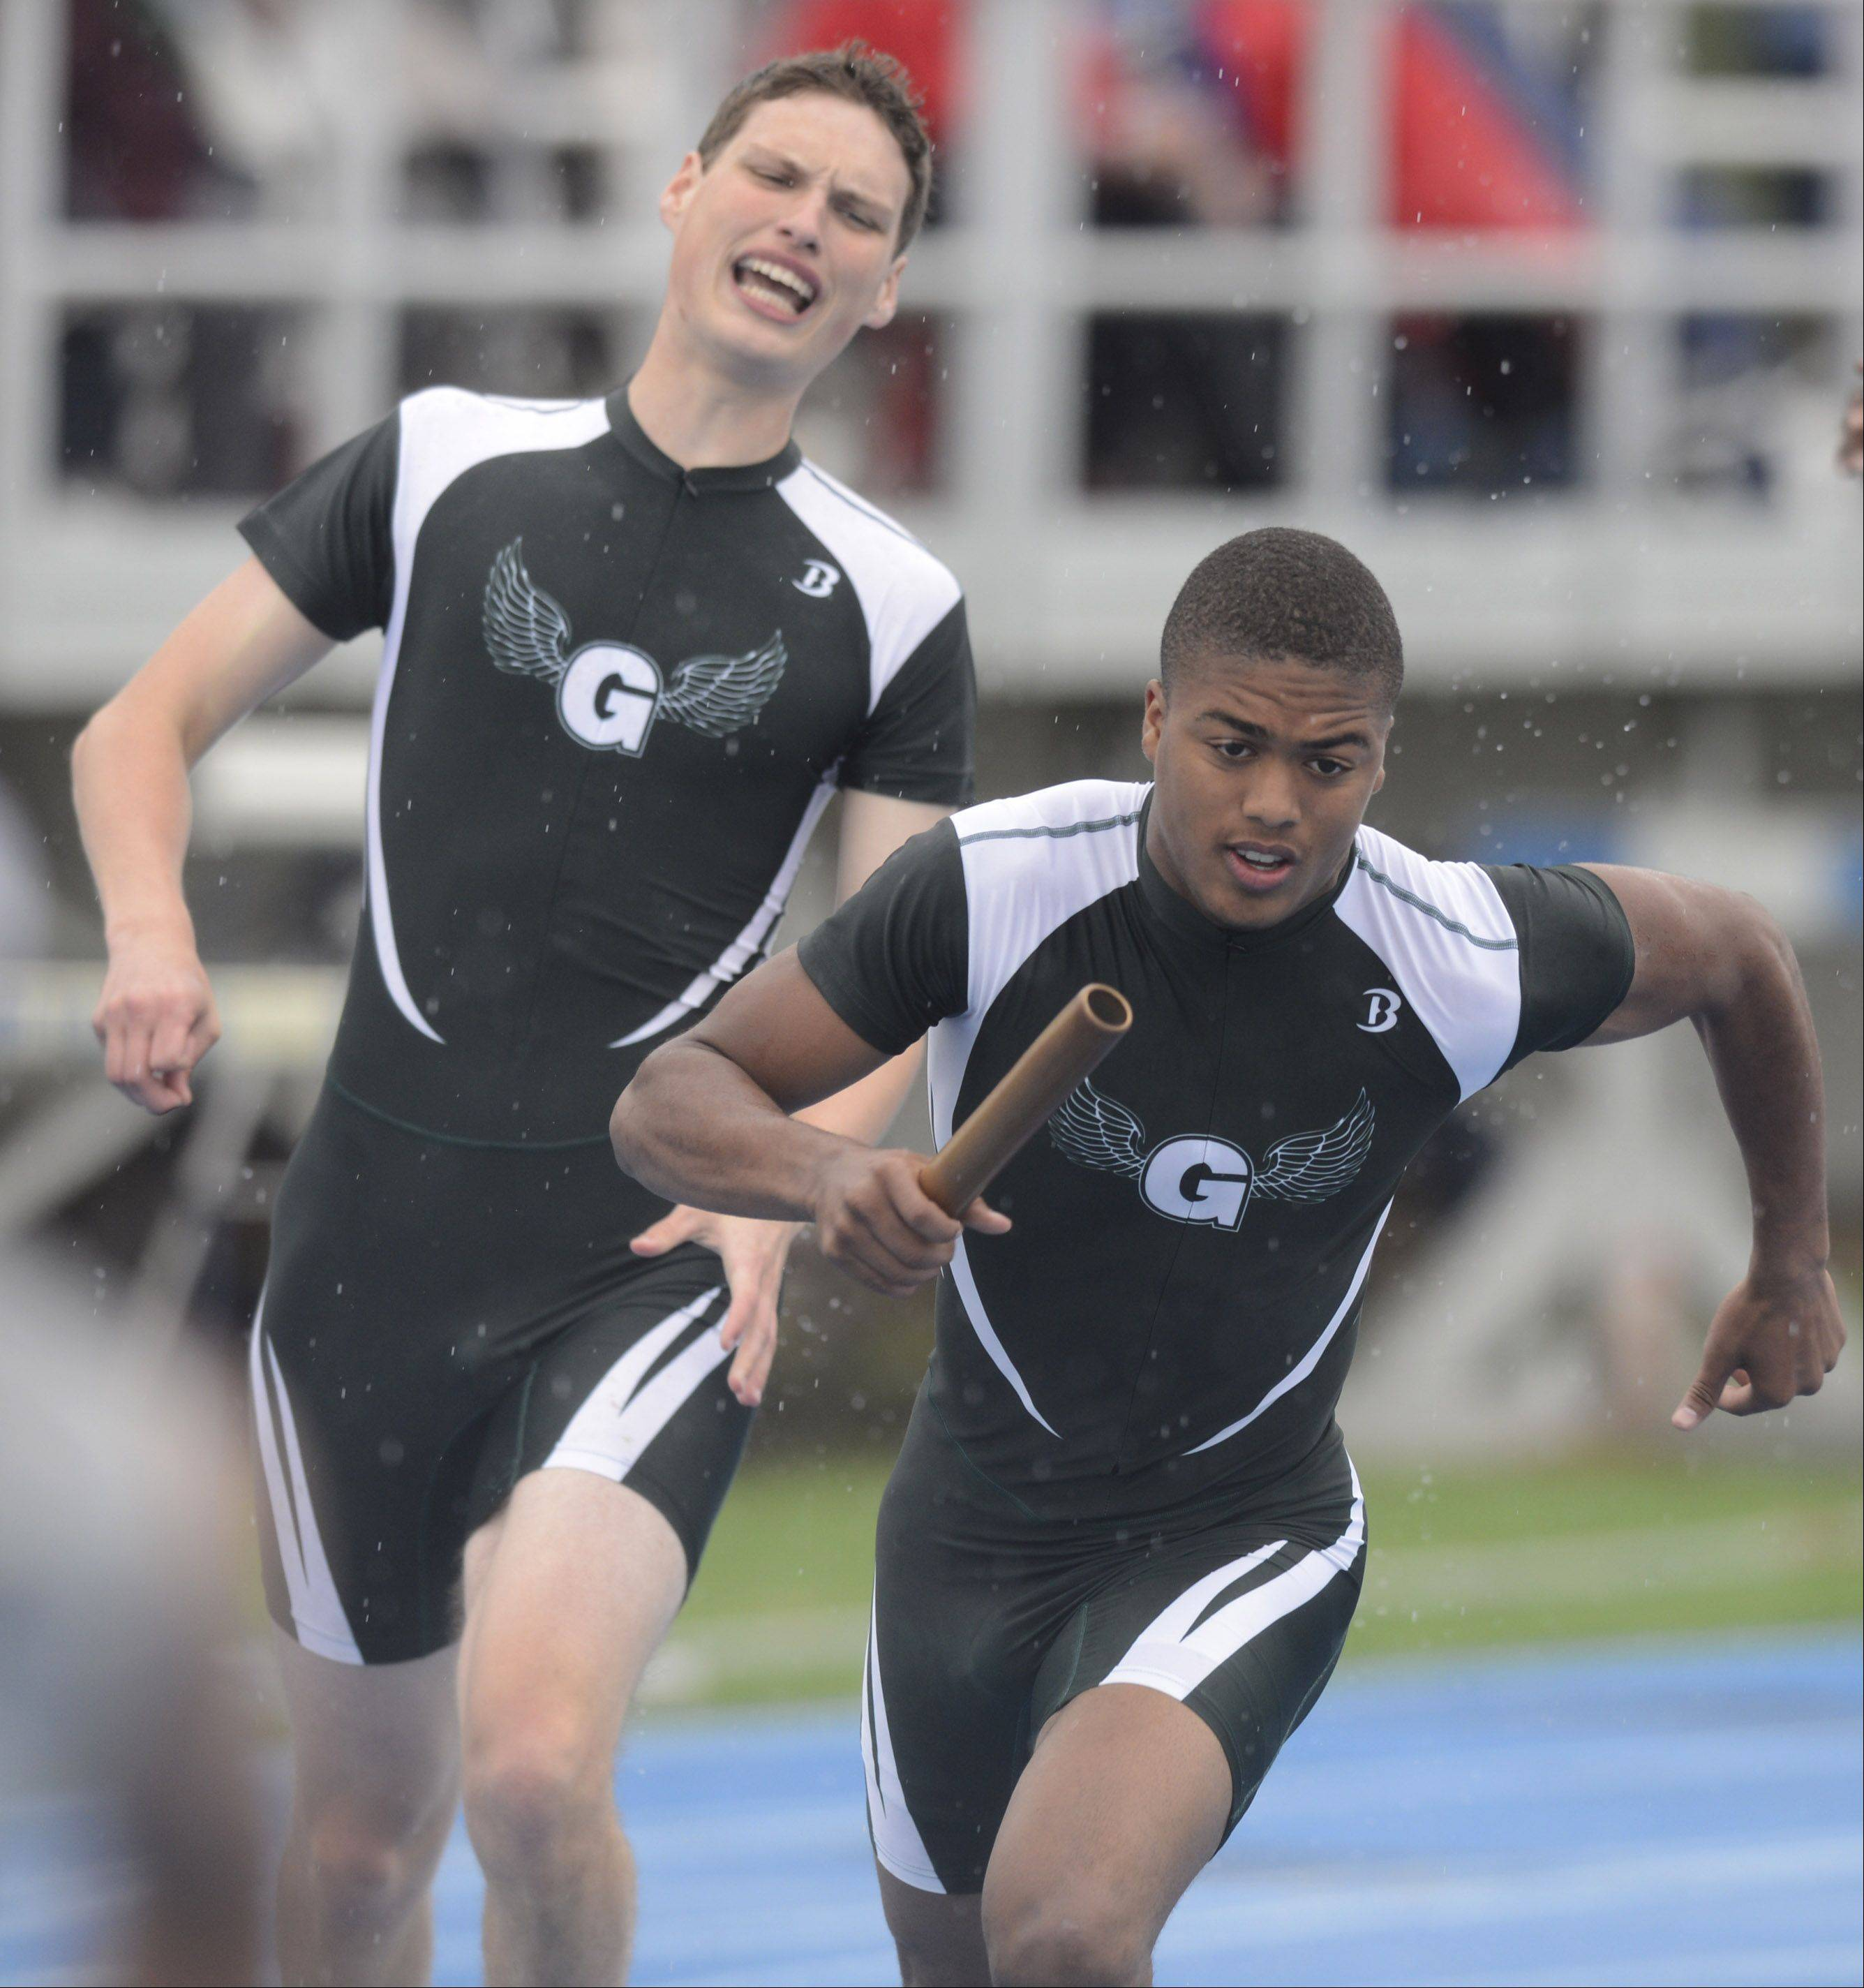 Grayslake Central's Kacey Adams takes the baton from teammate Matt Weatherhead in the Class 2A 4x200-meter relay during the boys state track finals in Charleston Saturday.